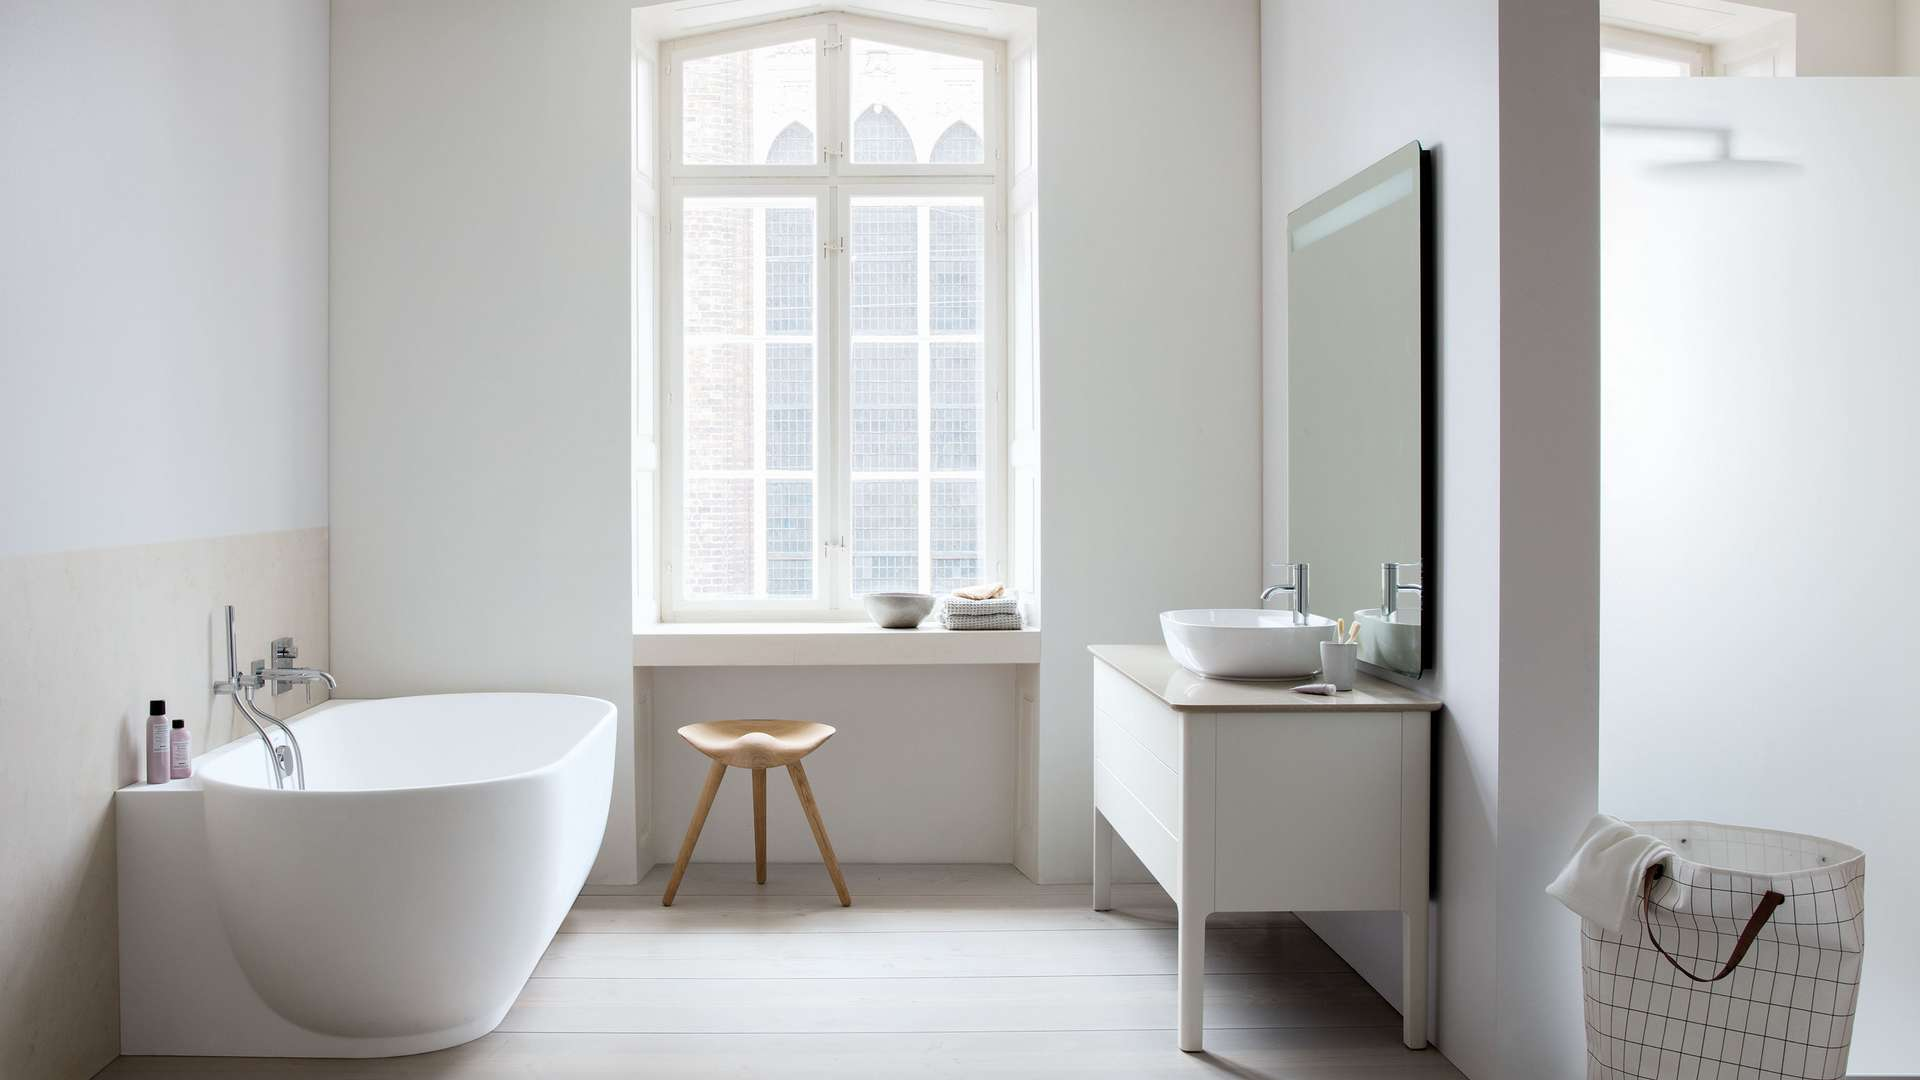 Courtesy of Duravit